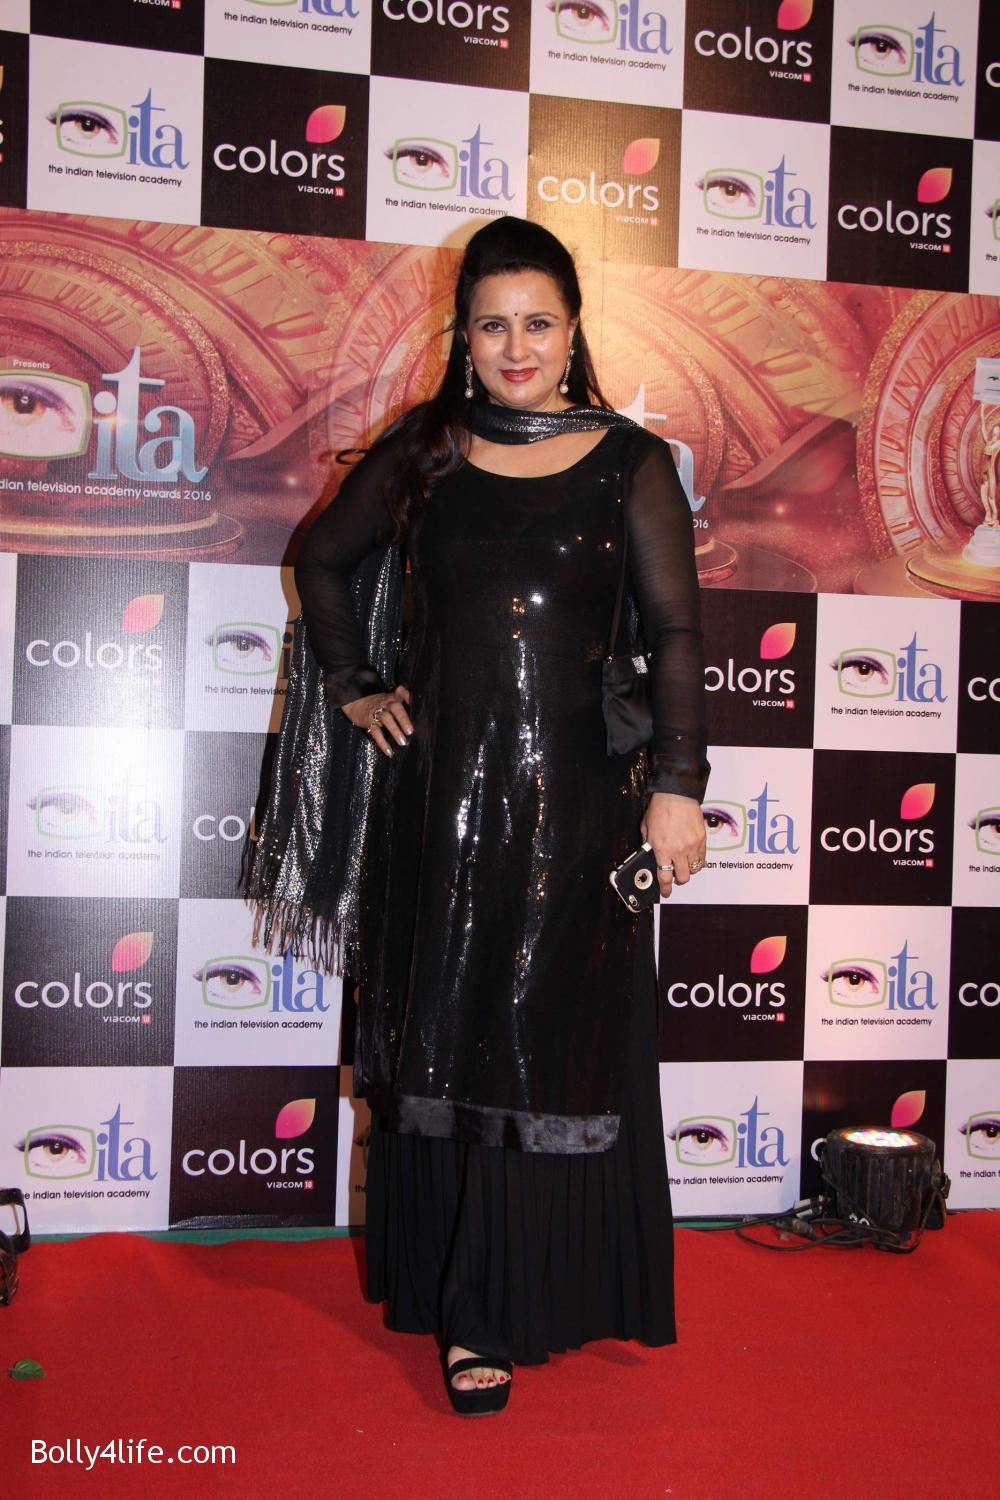 16th-Indian-Television-Academy-Awards-2016-12.jpg